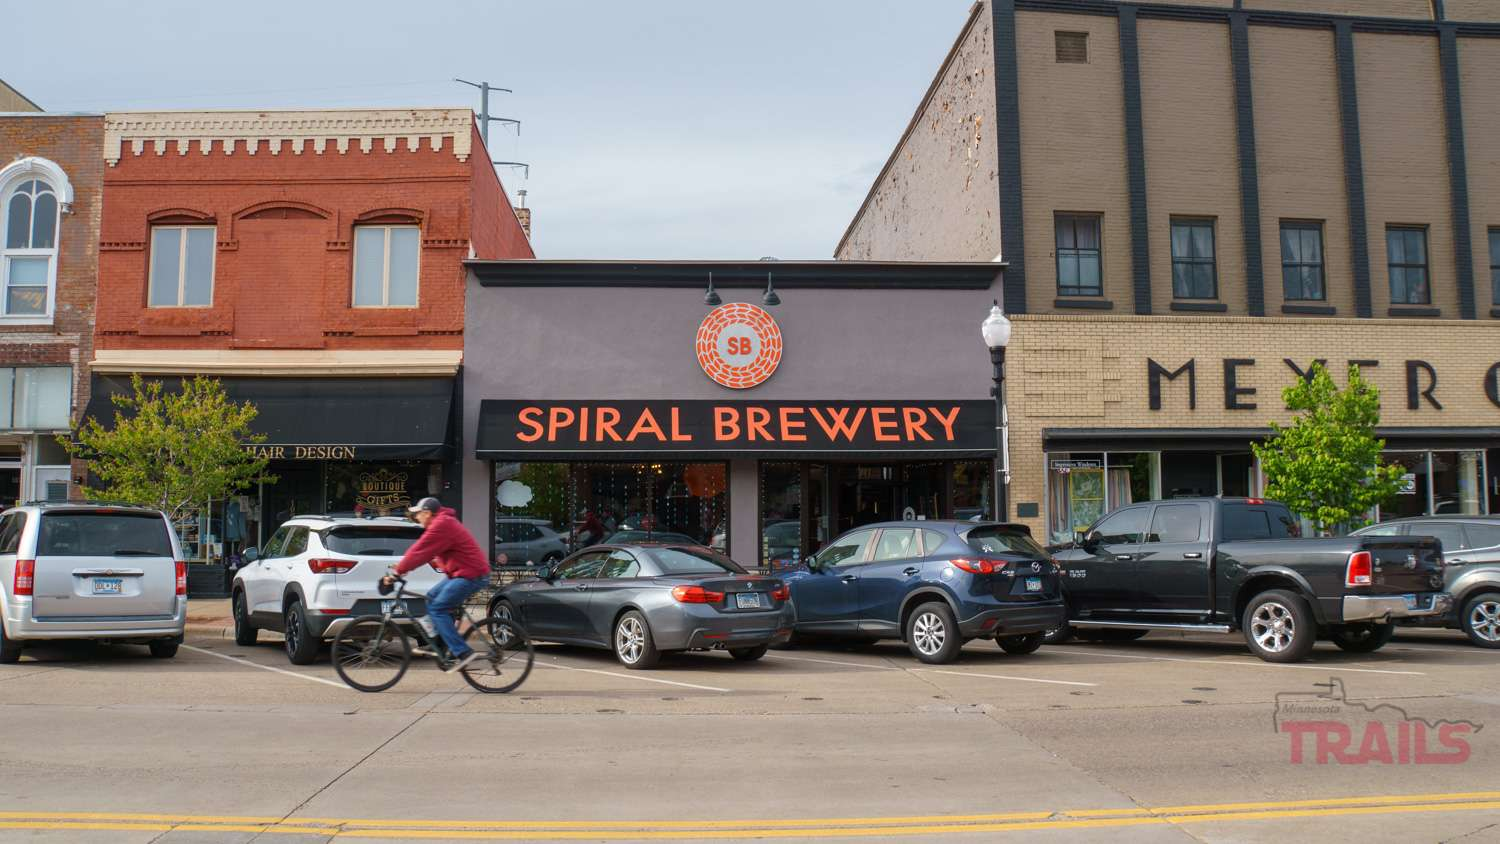 A man on a bike passes in front of Spiral Brewery in Hastings, MN